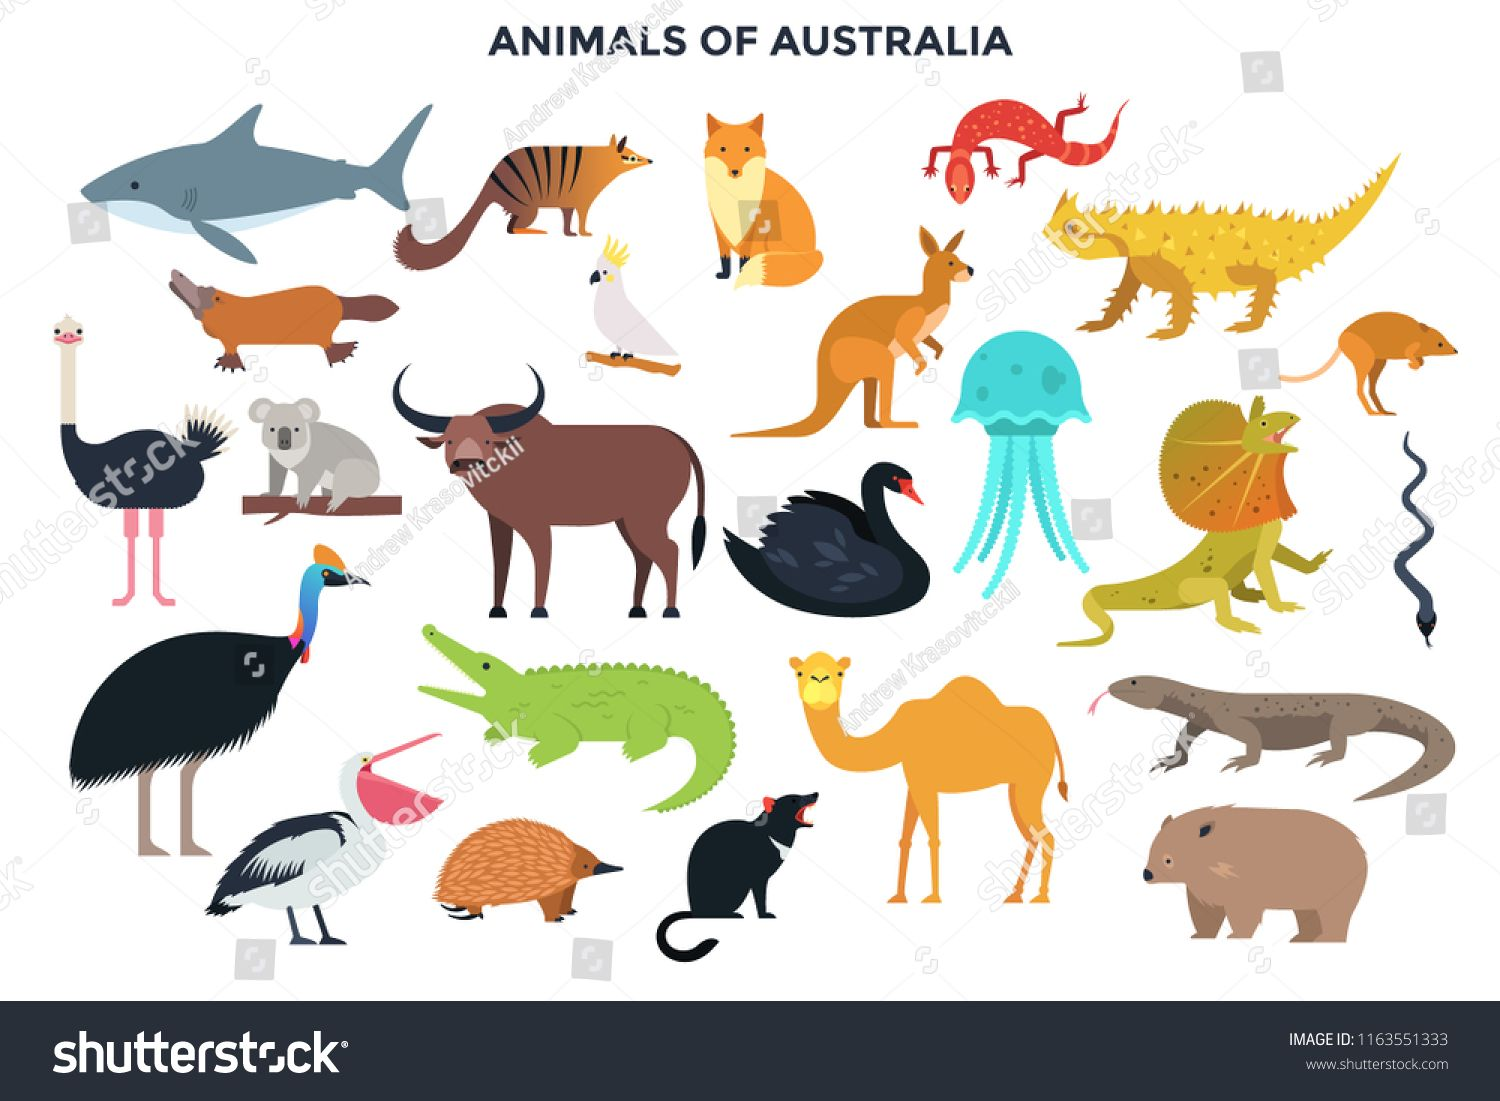 Big Collection Of Cute Funny Wild Animals Of Australia Bundle Of Adorable Cartoon Australian Mammals Birds Funny Wild Animals Australia Animals Animals Wild